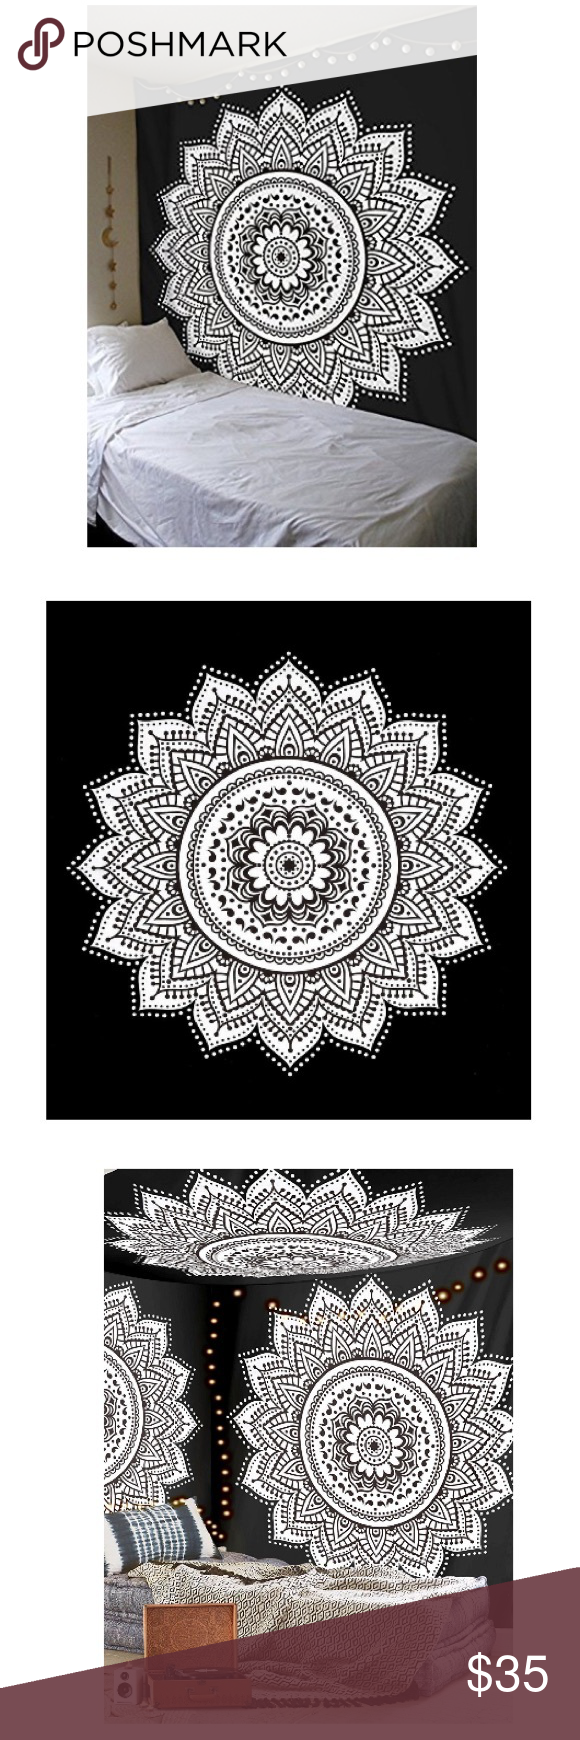 85 Stunning Bohemian Style Interior Design Ideas For Your: Black And White Star Bohemian Mandala Tapestry Beautiful